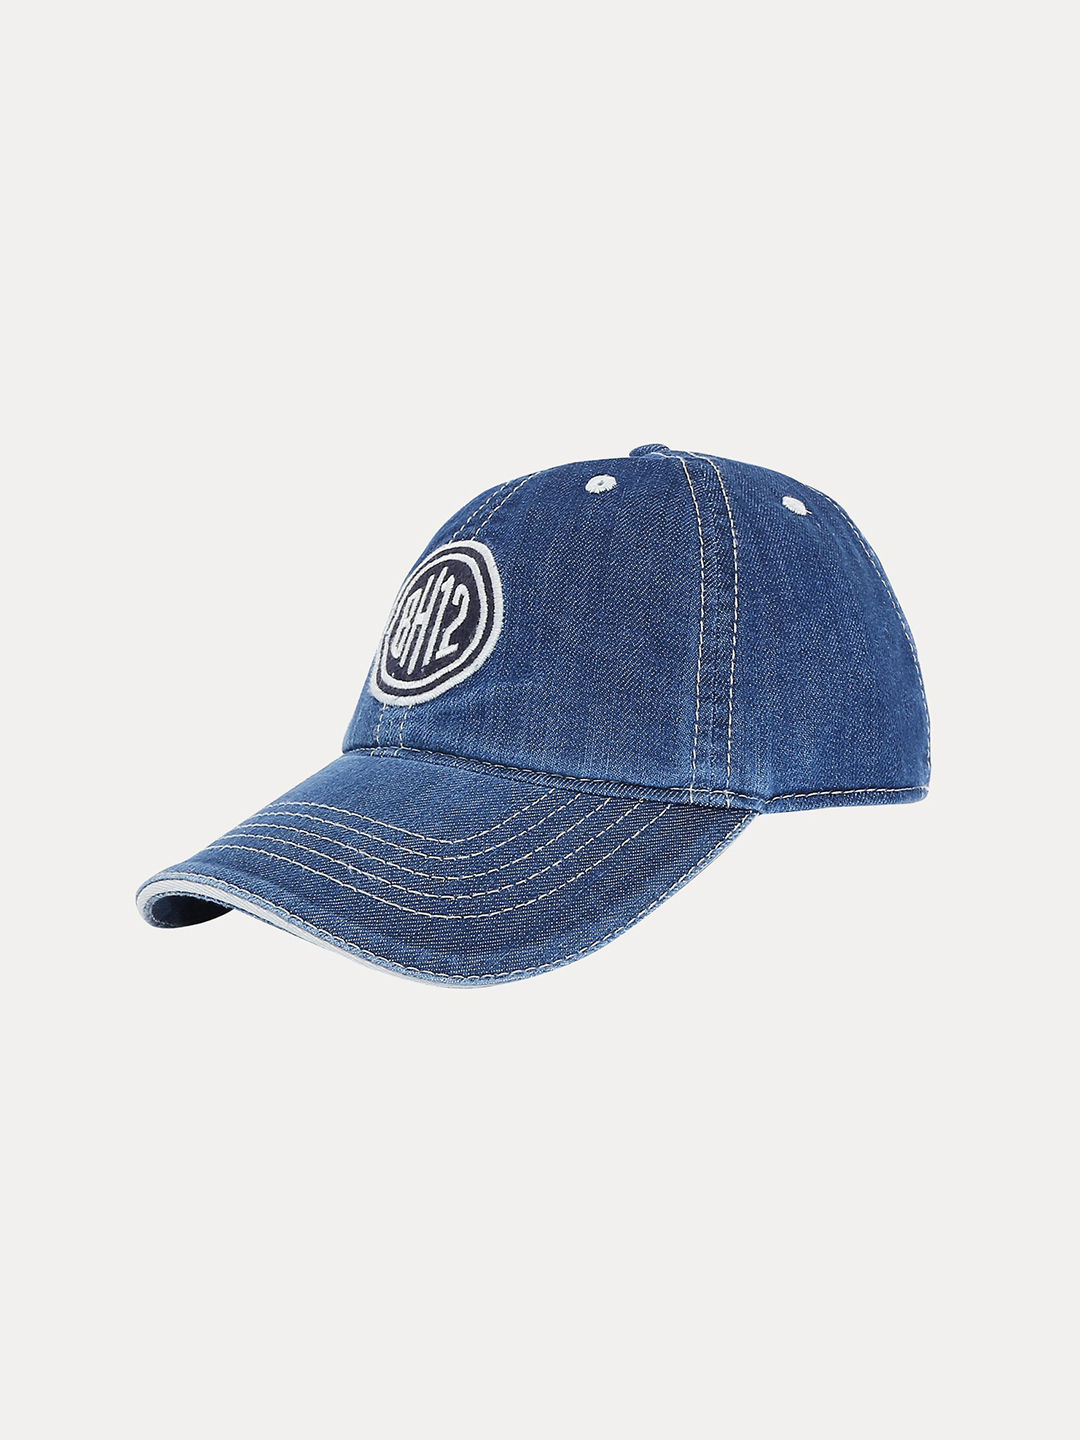 BLUE PRINTED BASEBALL CAP